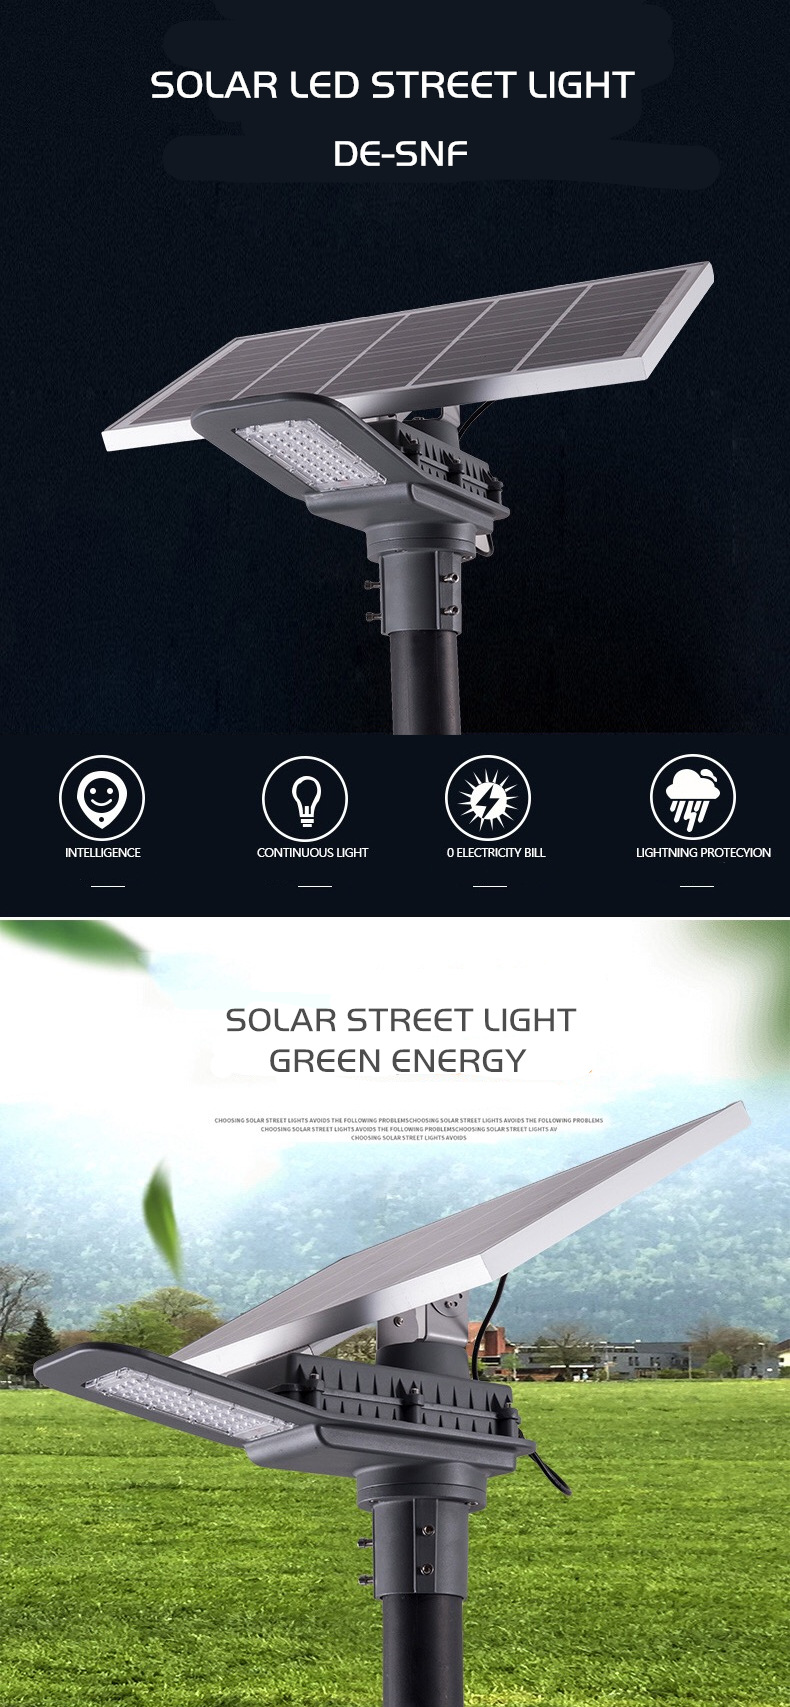 DE-SNF SOLAR LED STREET LIGHT DELIGHT ECO ENERGY